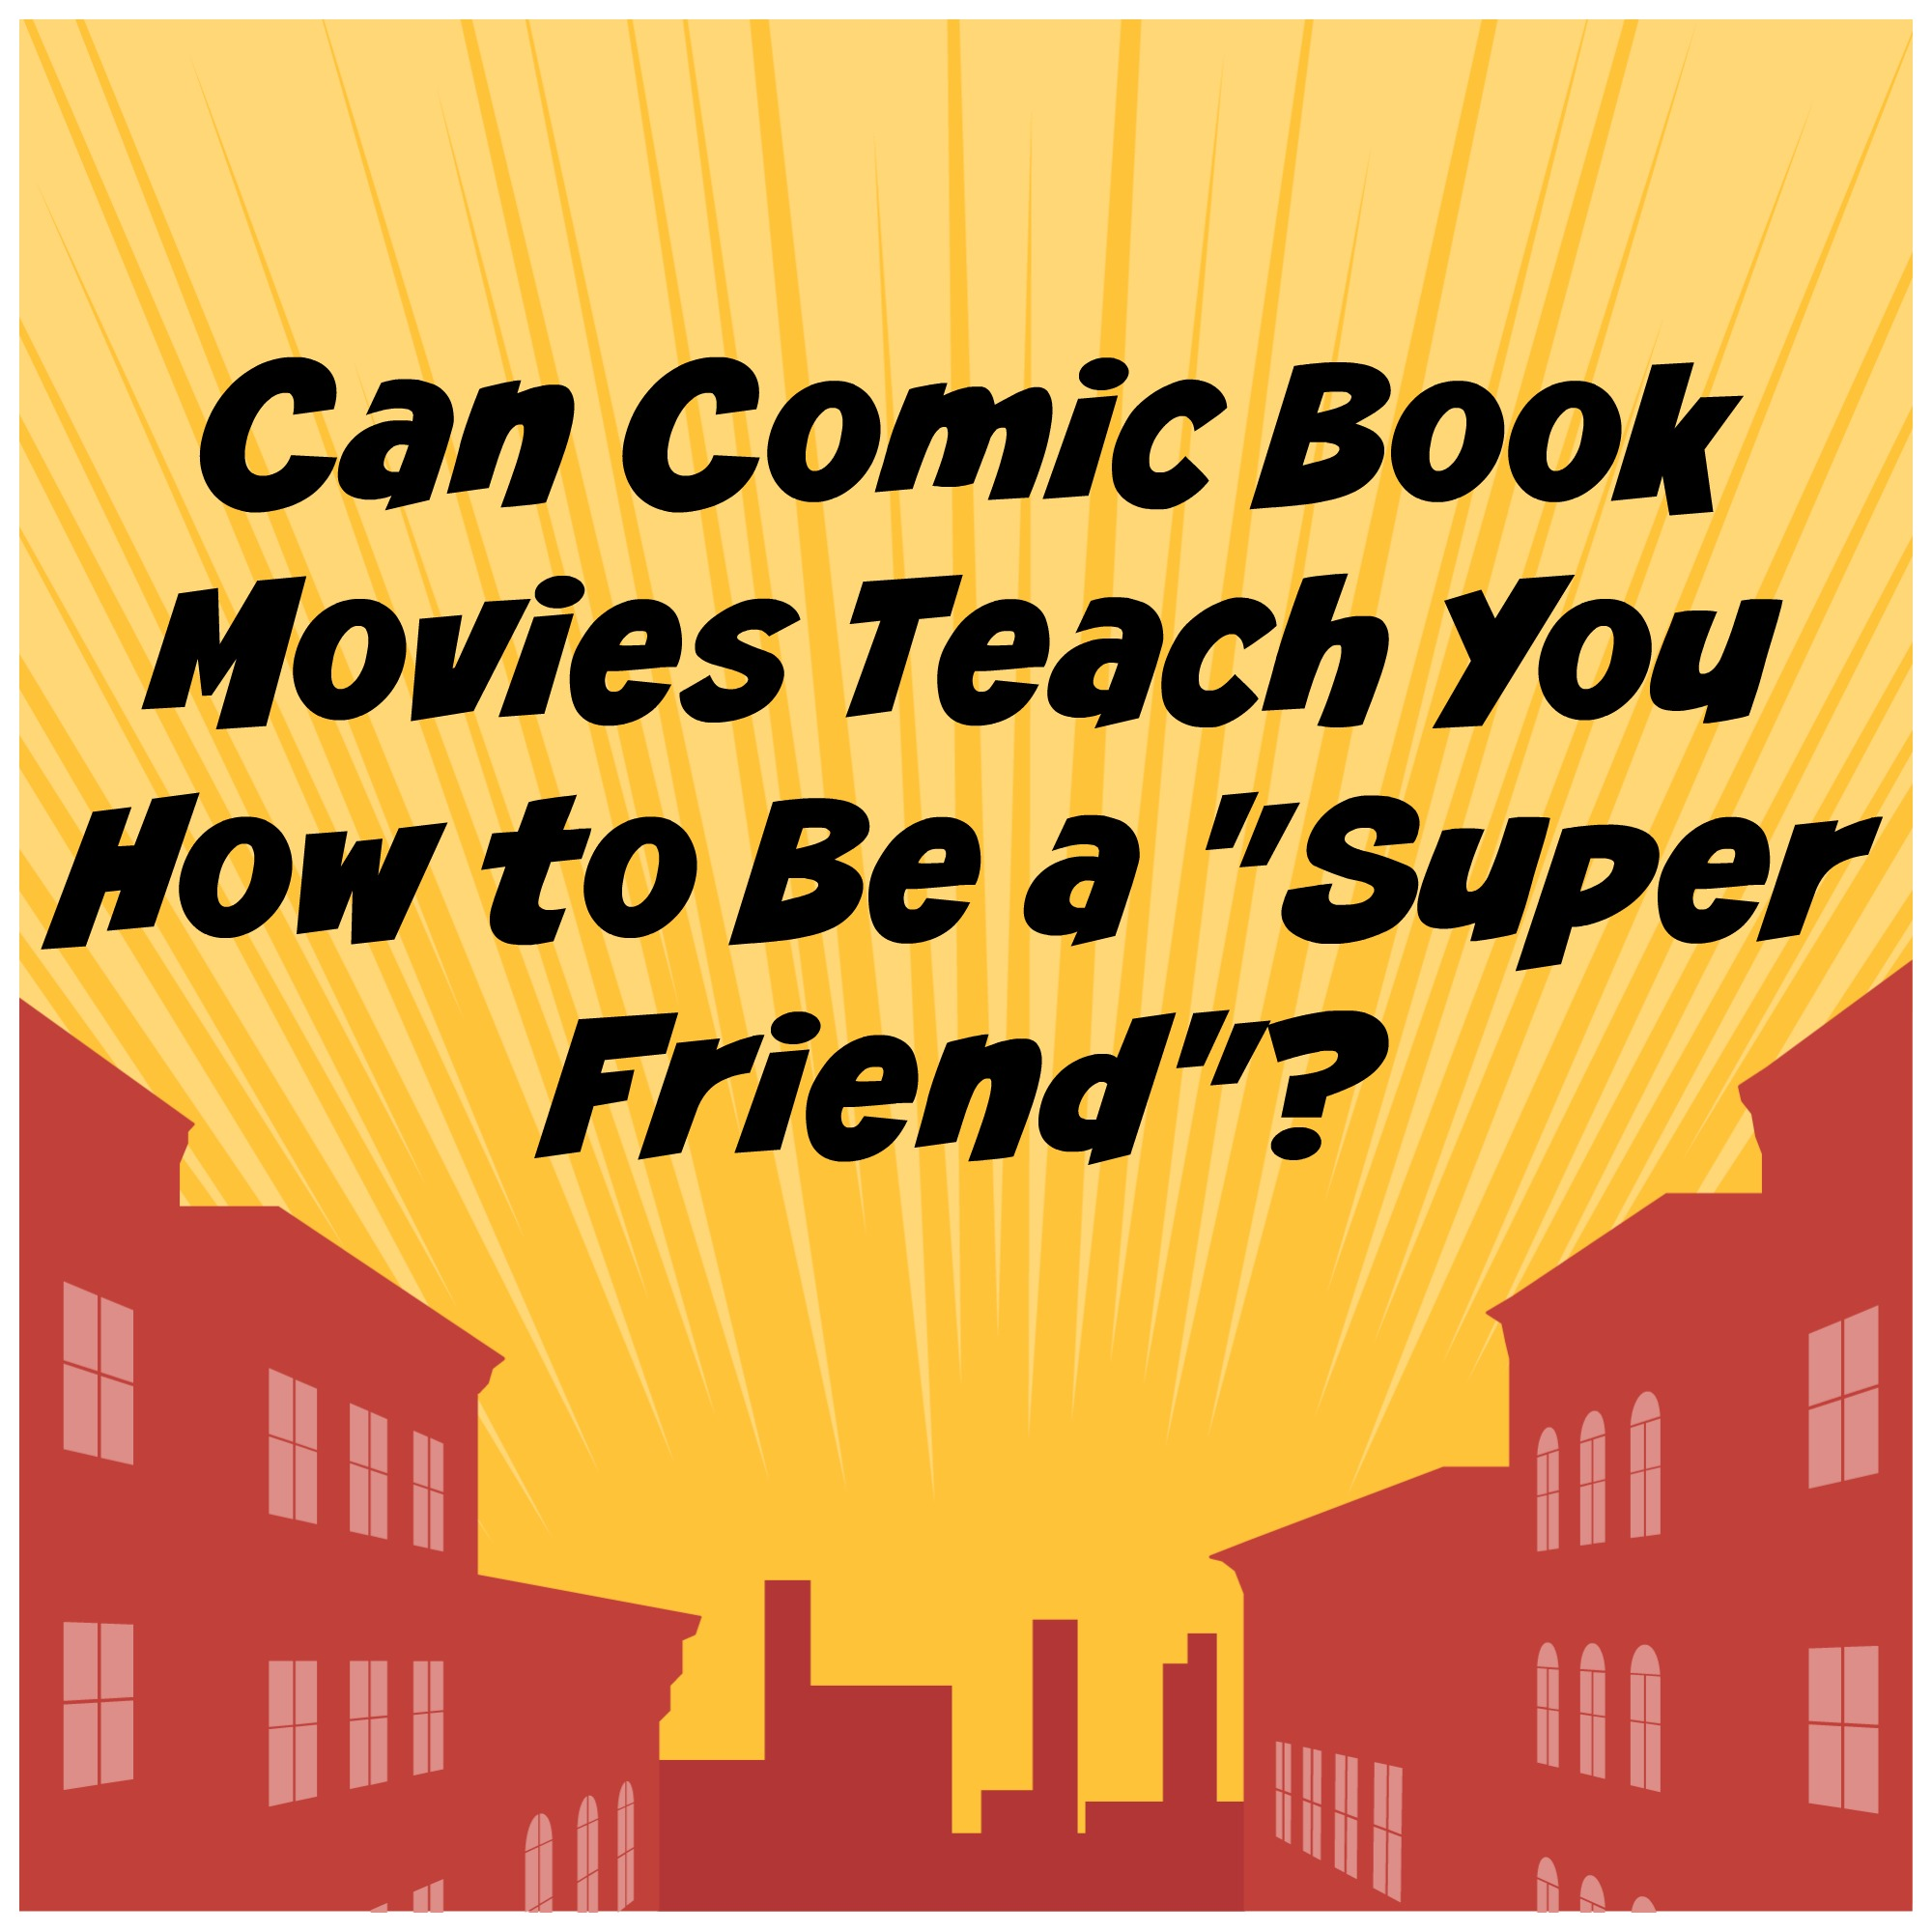 Learn how to be a super friend from comic book movies